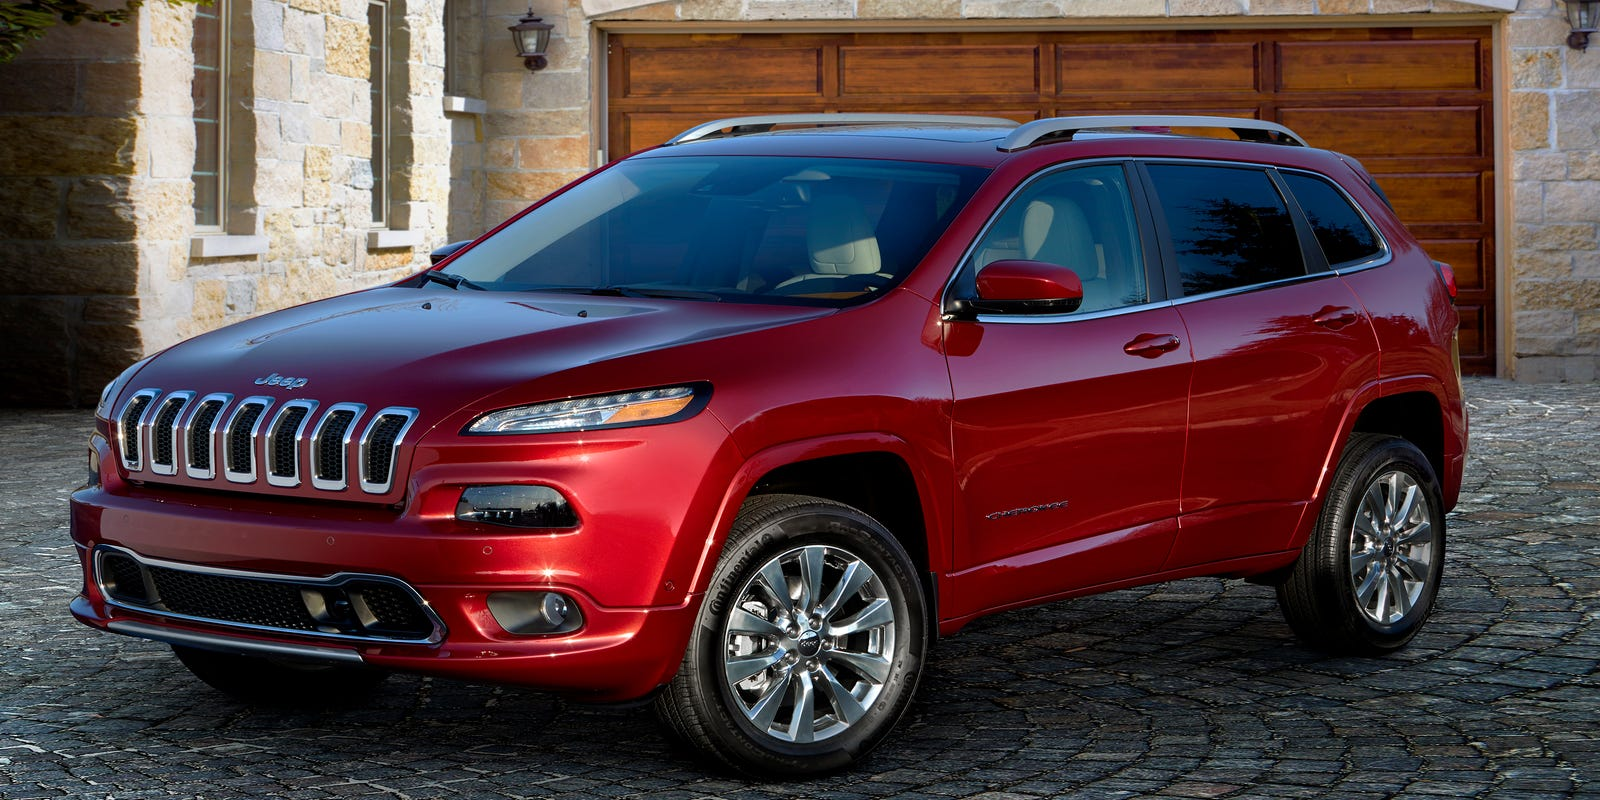 Most American Made Vehicles Cars Com Reveals Top 10 List For 2018